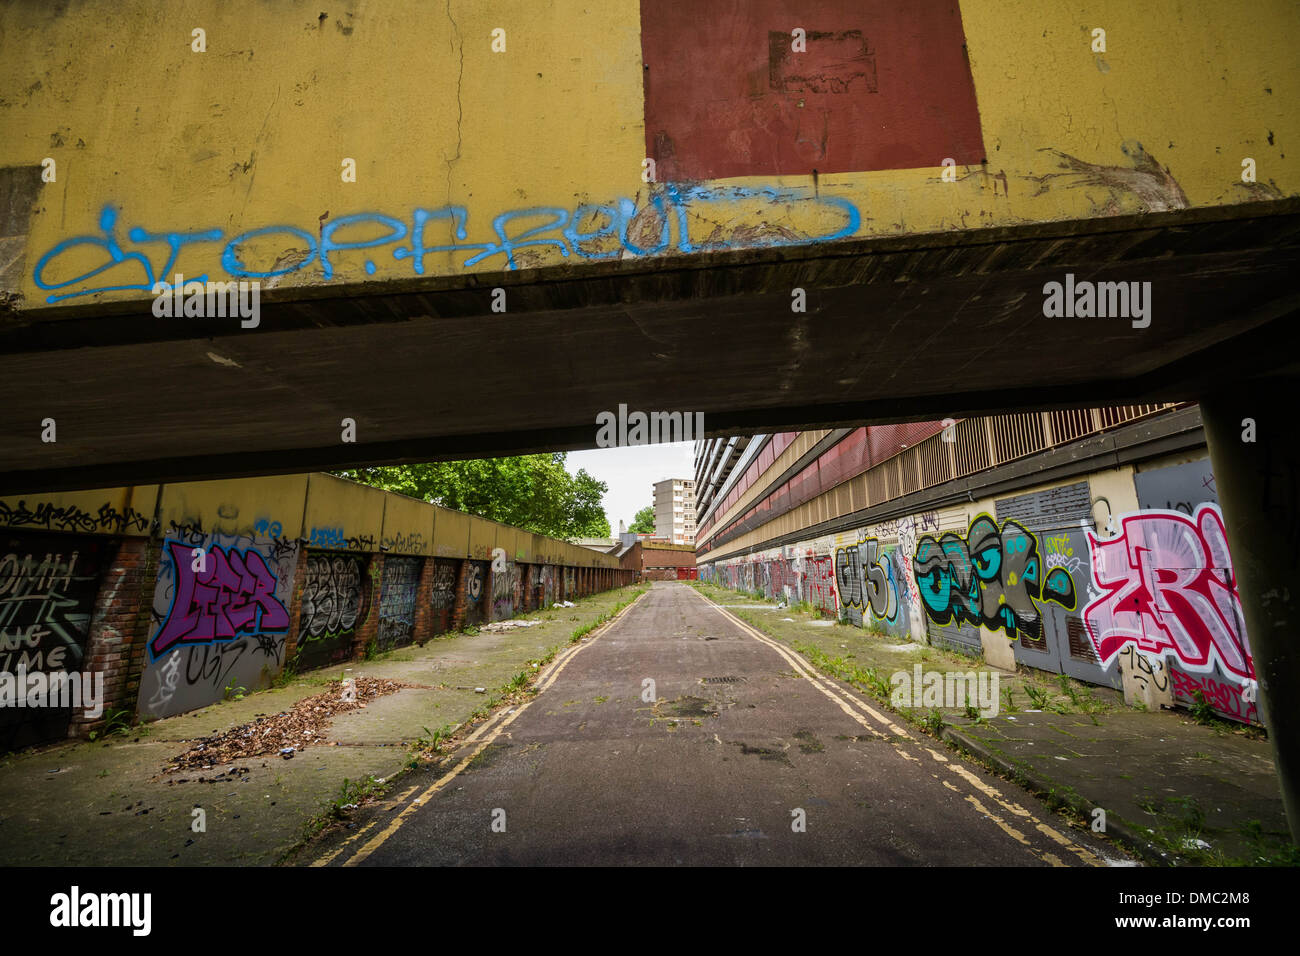 Heygate Estate remains derelict in south London, UK. Stock Photo